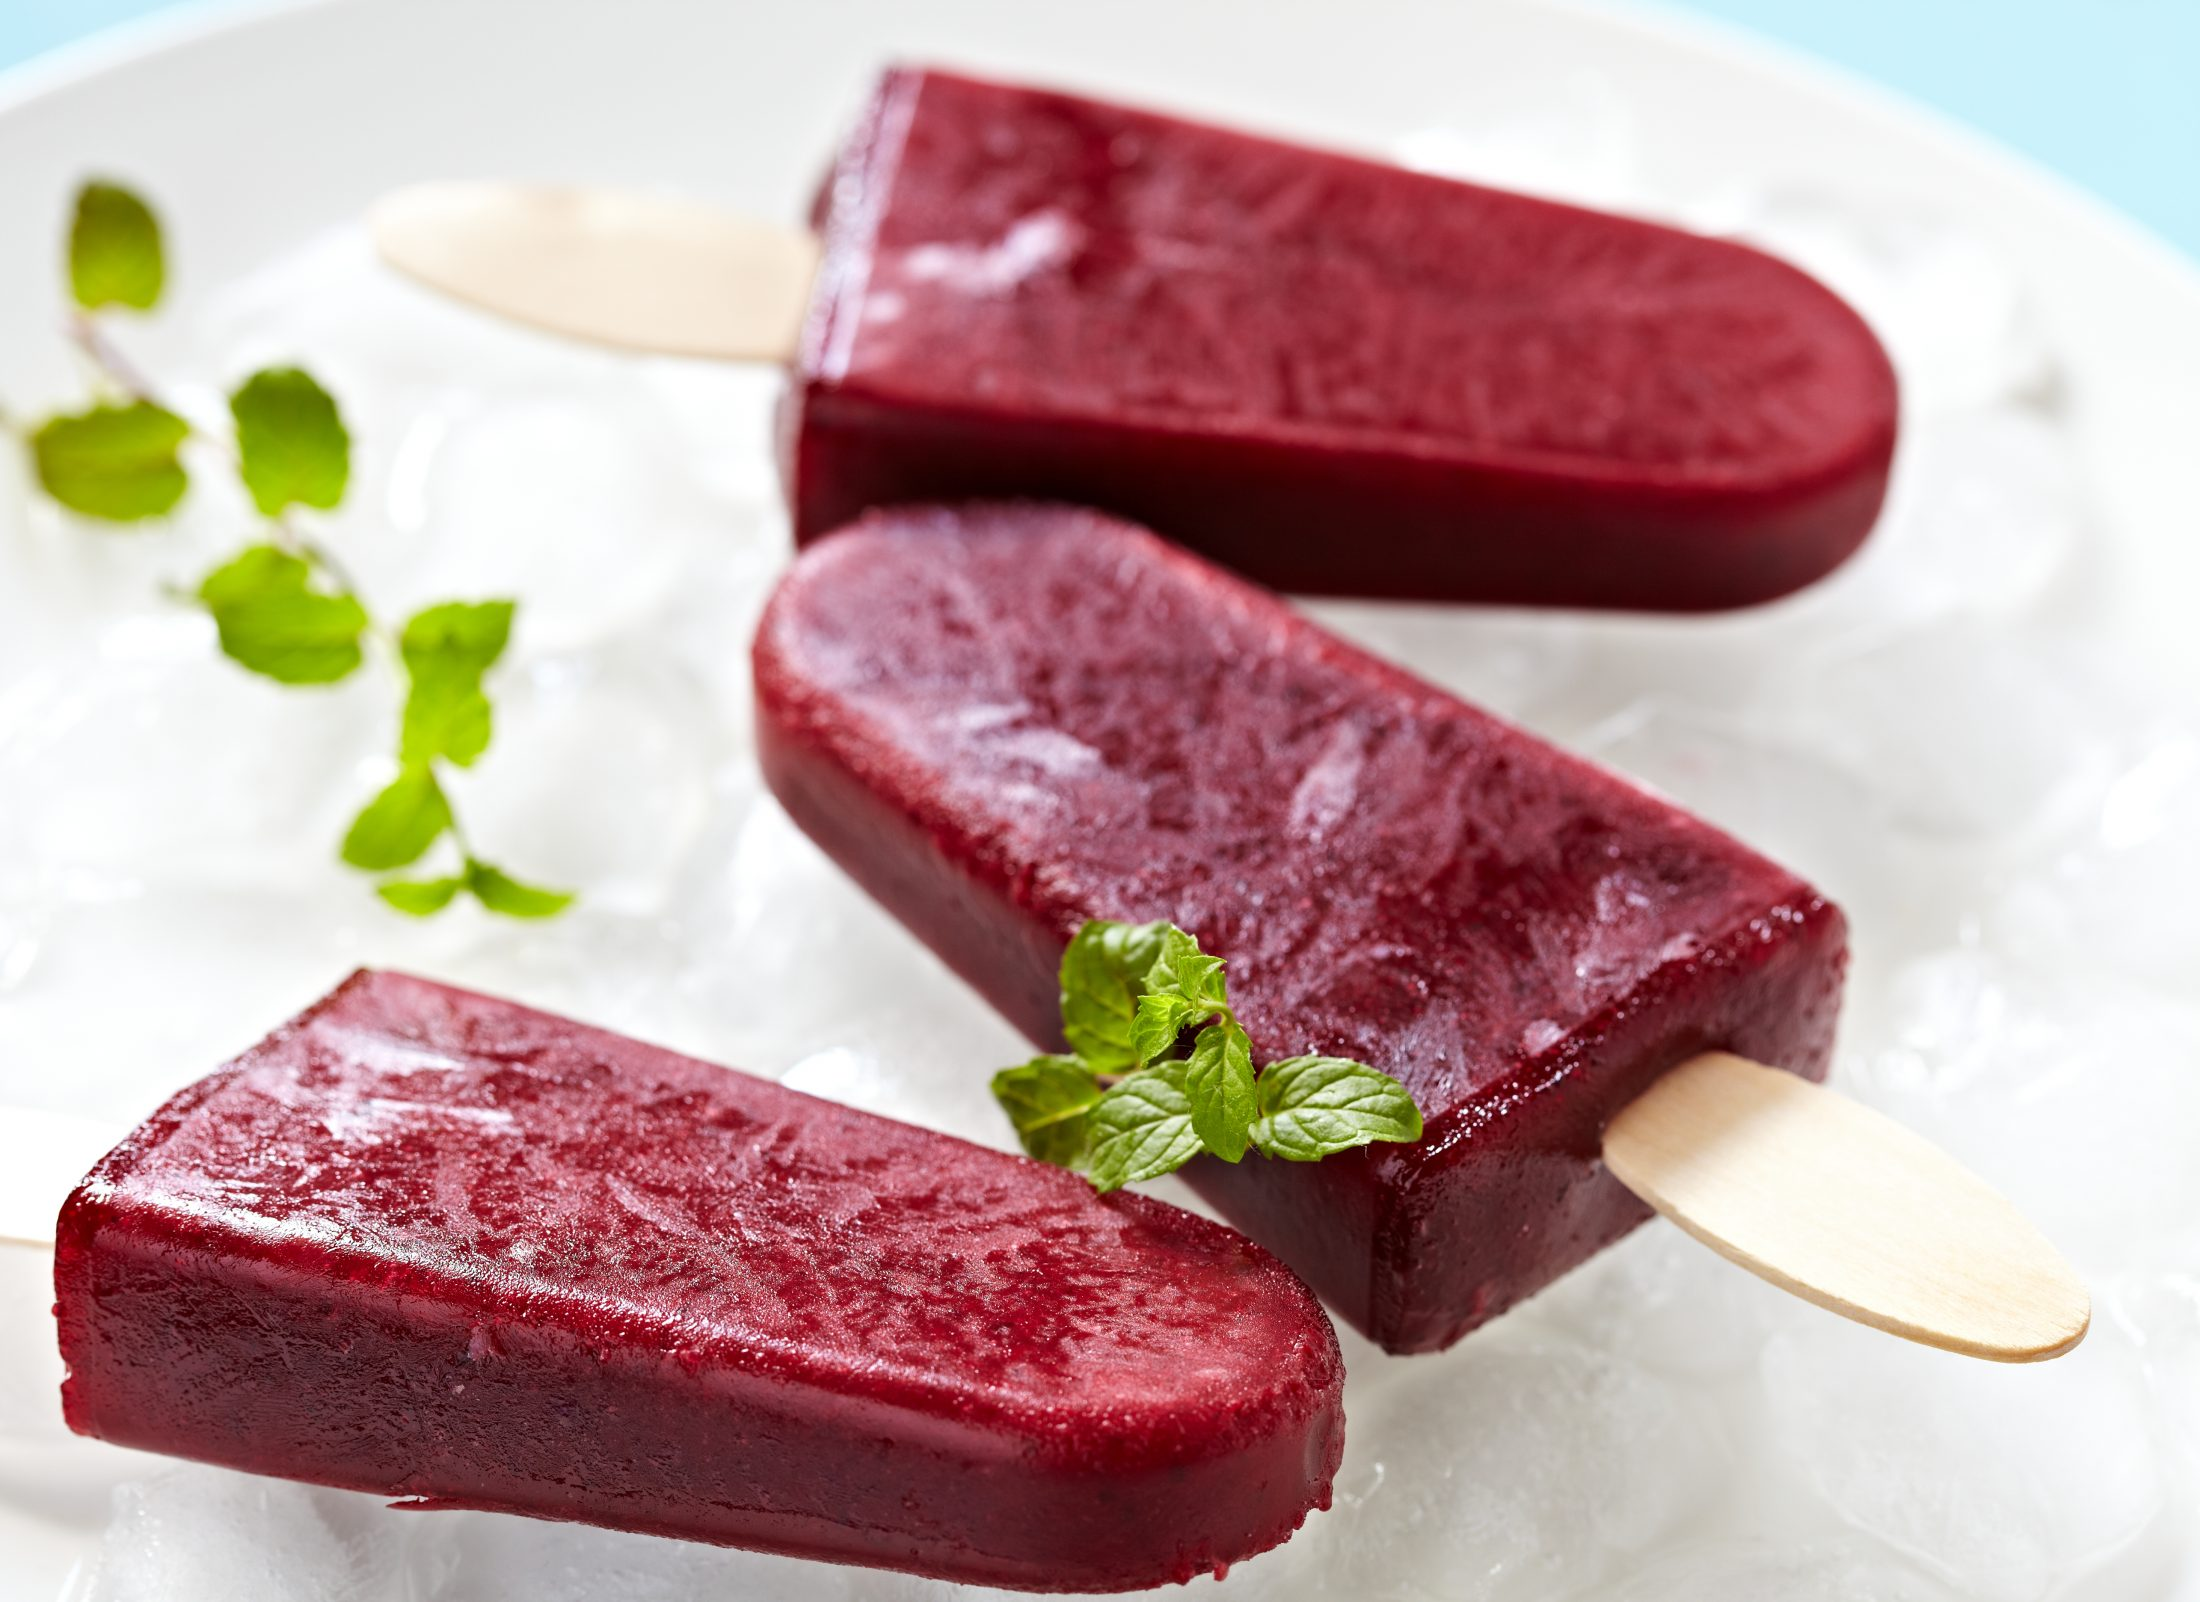 Red matcha popsicles on ice